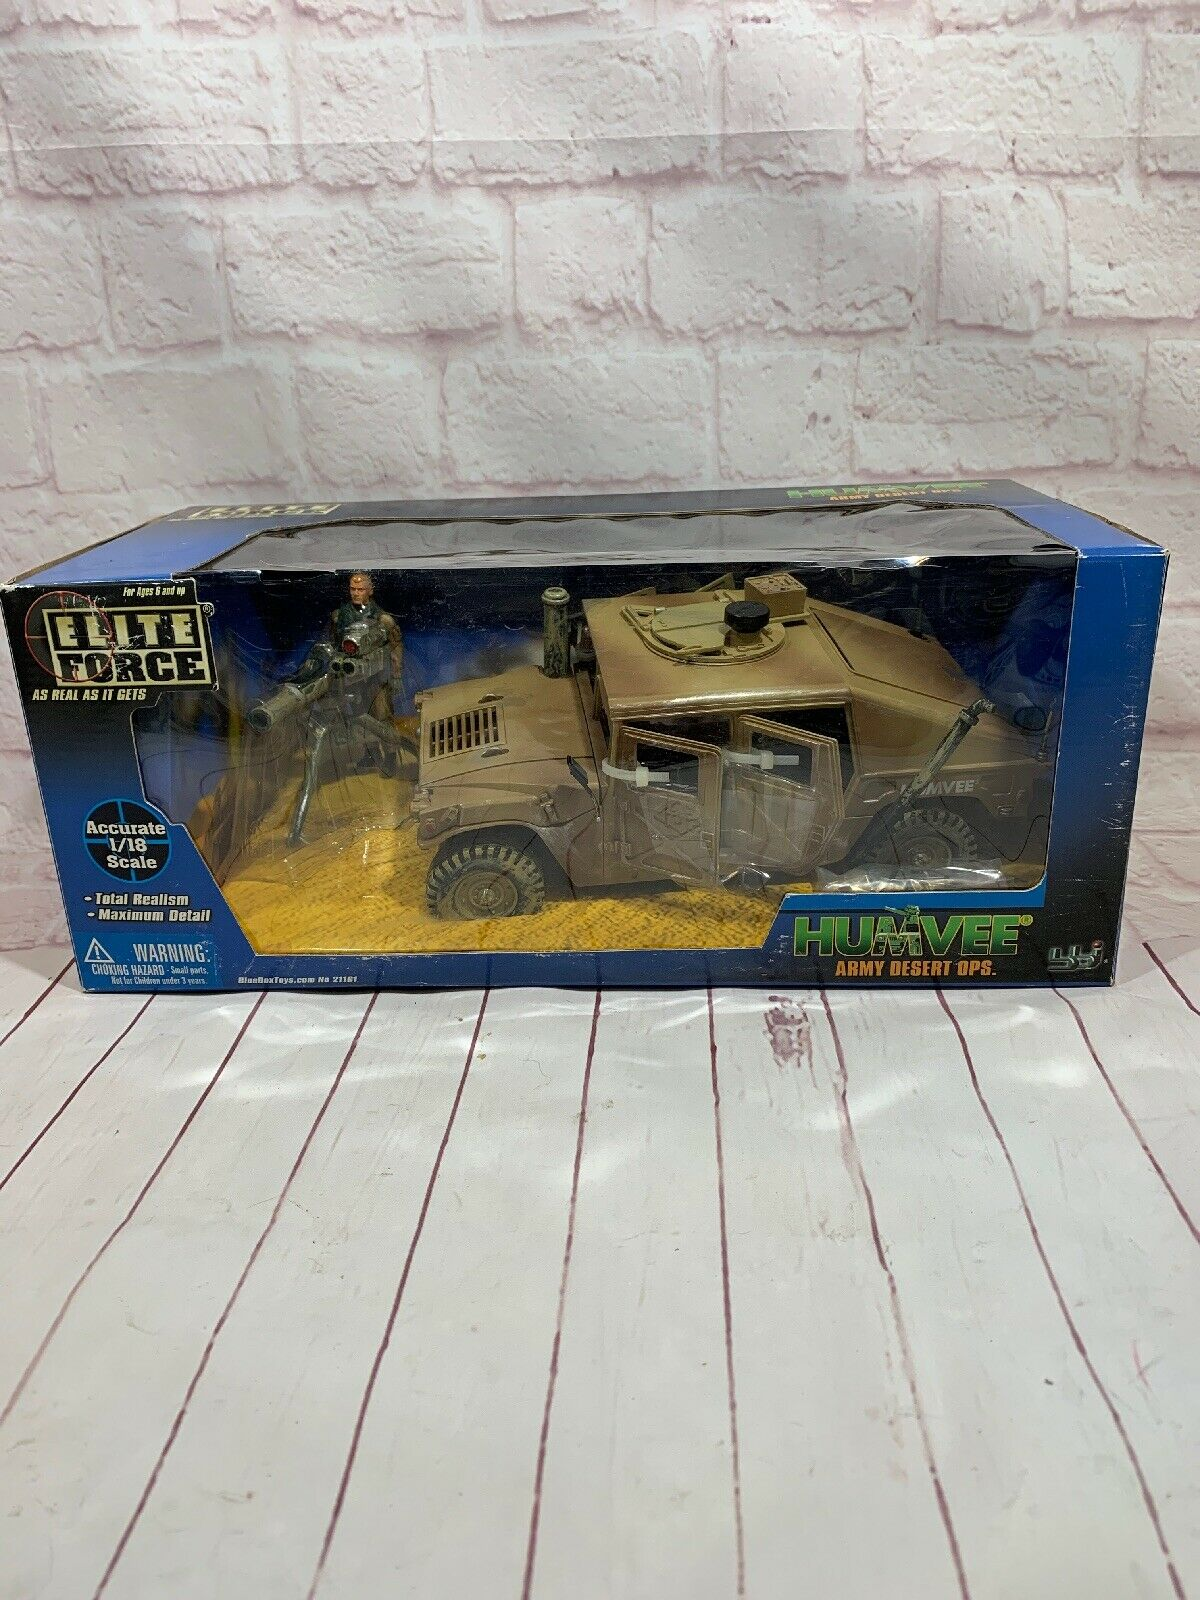 BBi ELITE FORCE Army Desert Ops. Humvee New In Box 1 18 Scale